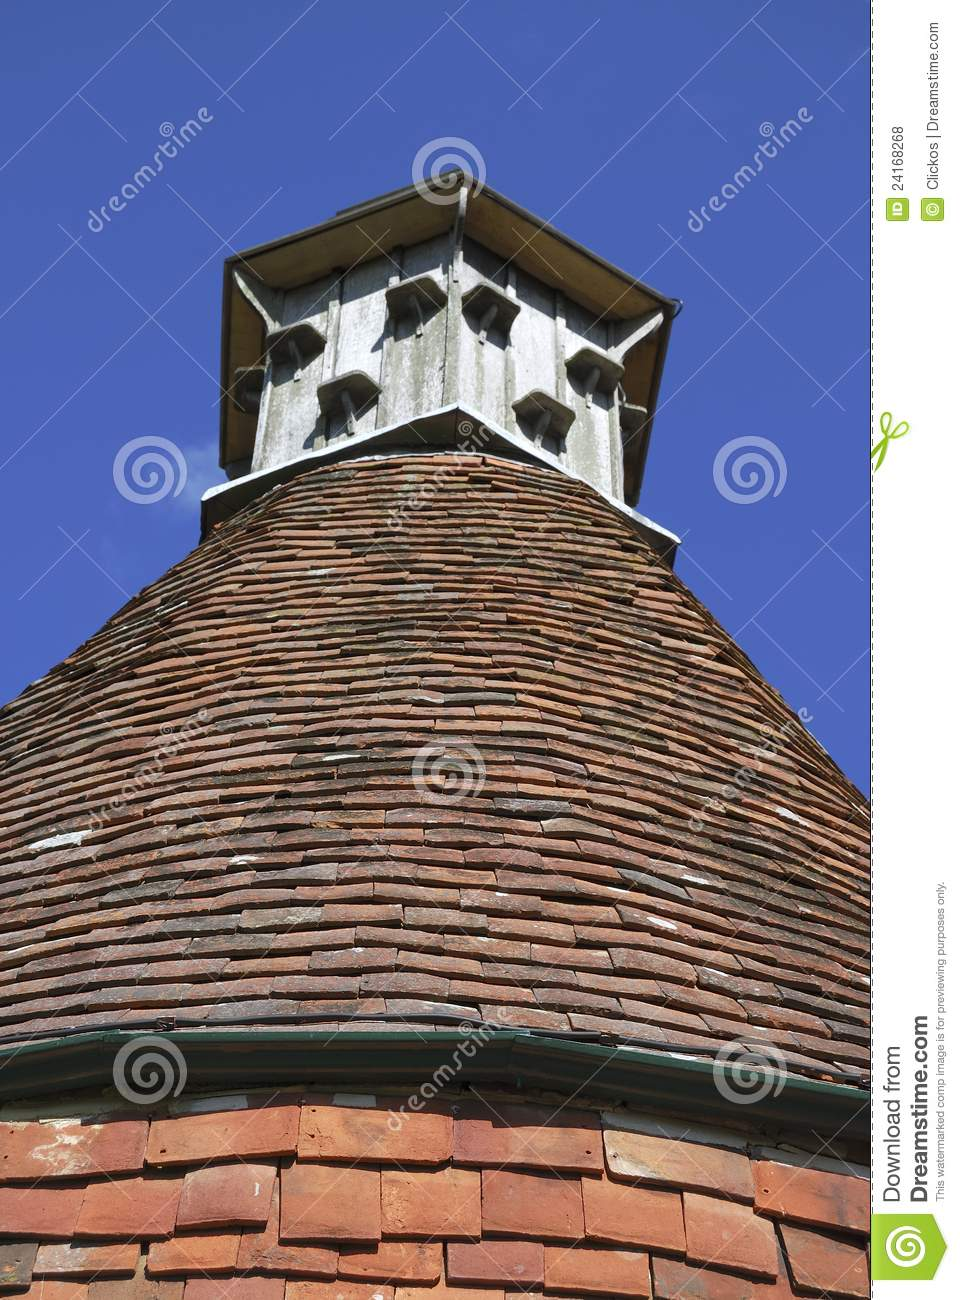 Dovecote On Tiled Roof Of English House Stock Photo